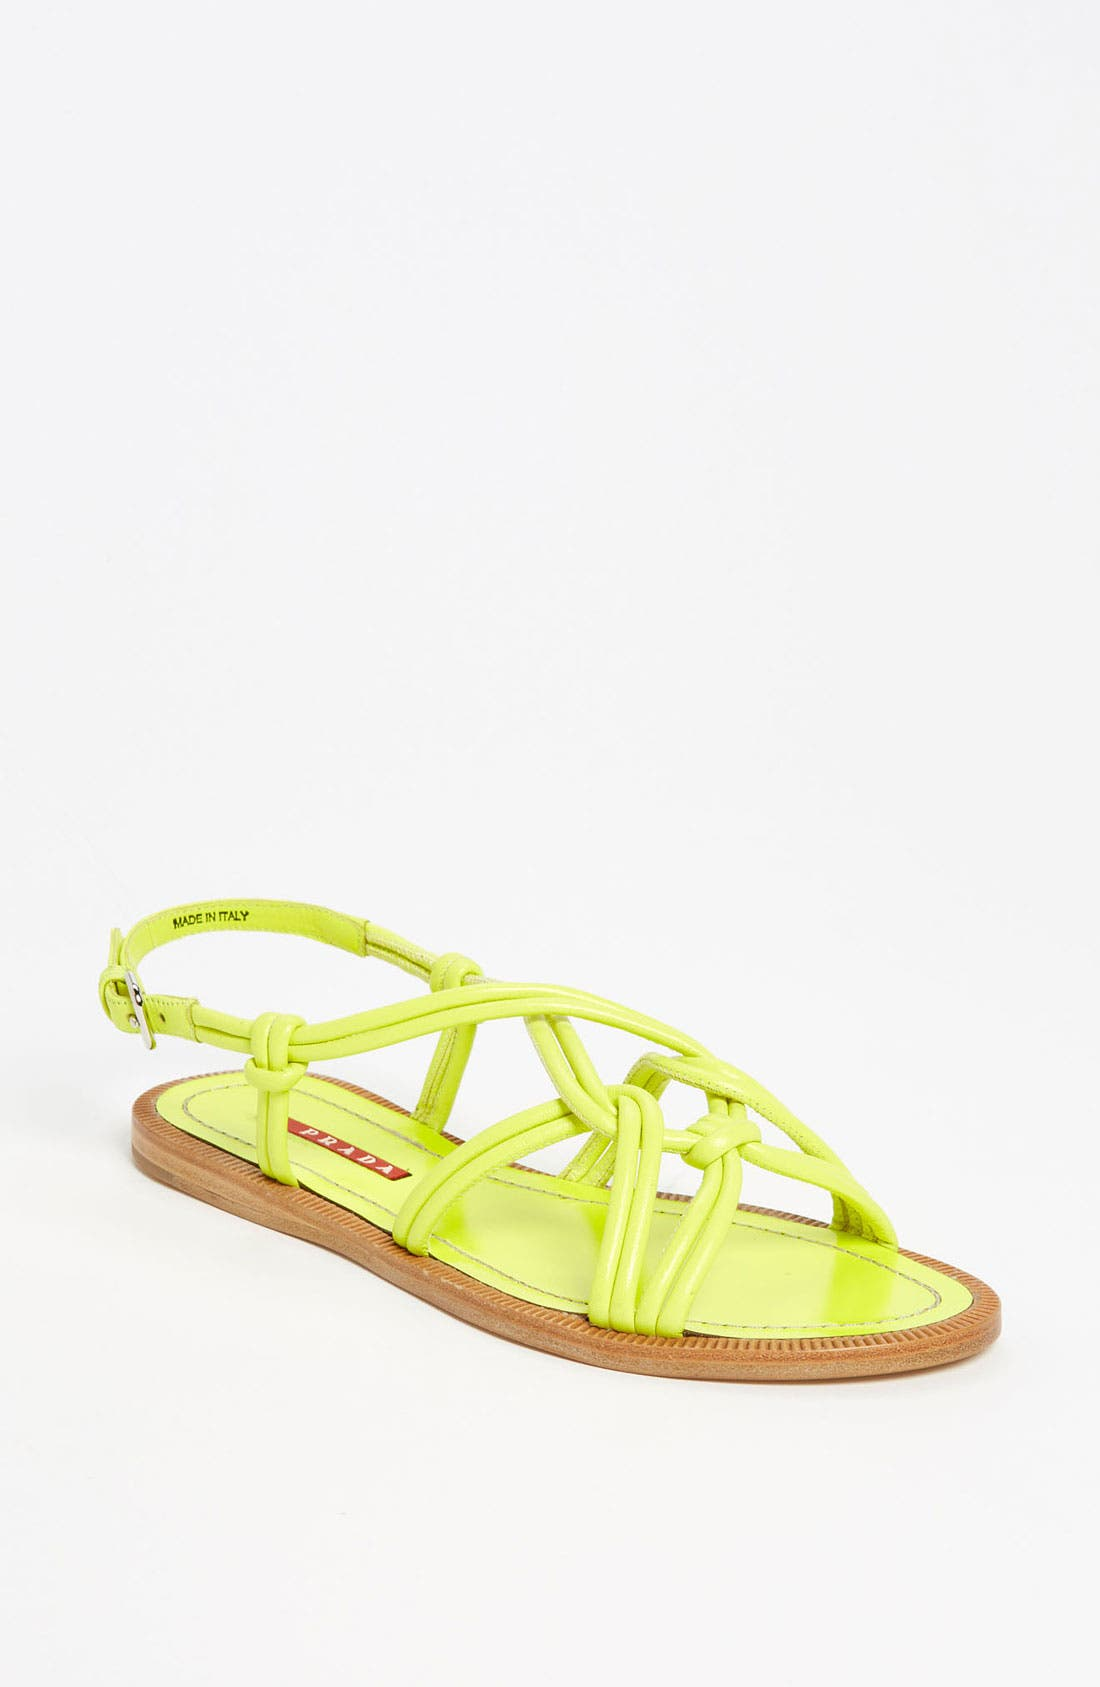 Alternate Image 1 Selected - Prada Knot Strap Sandal